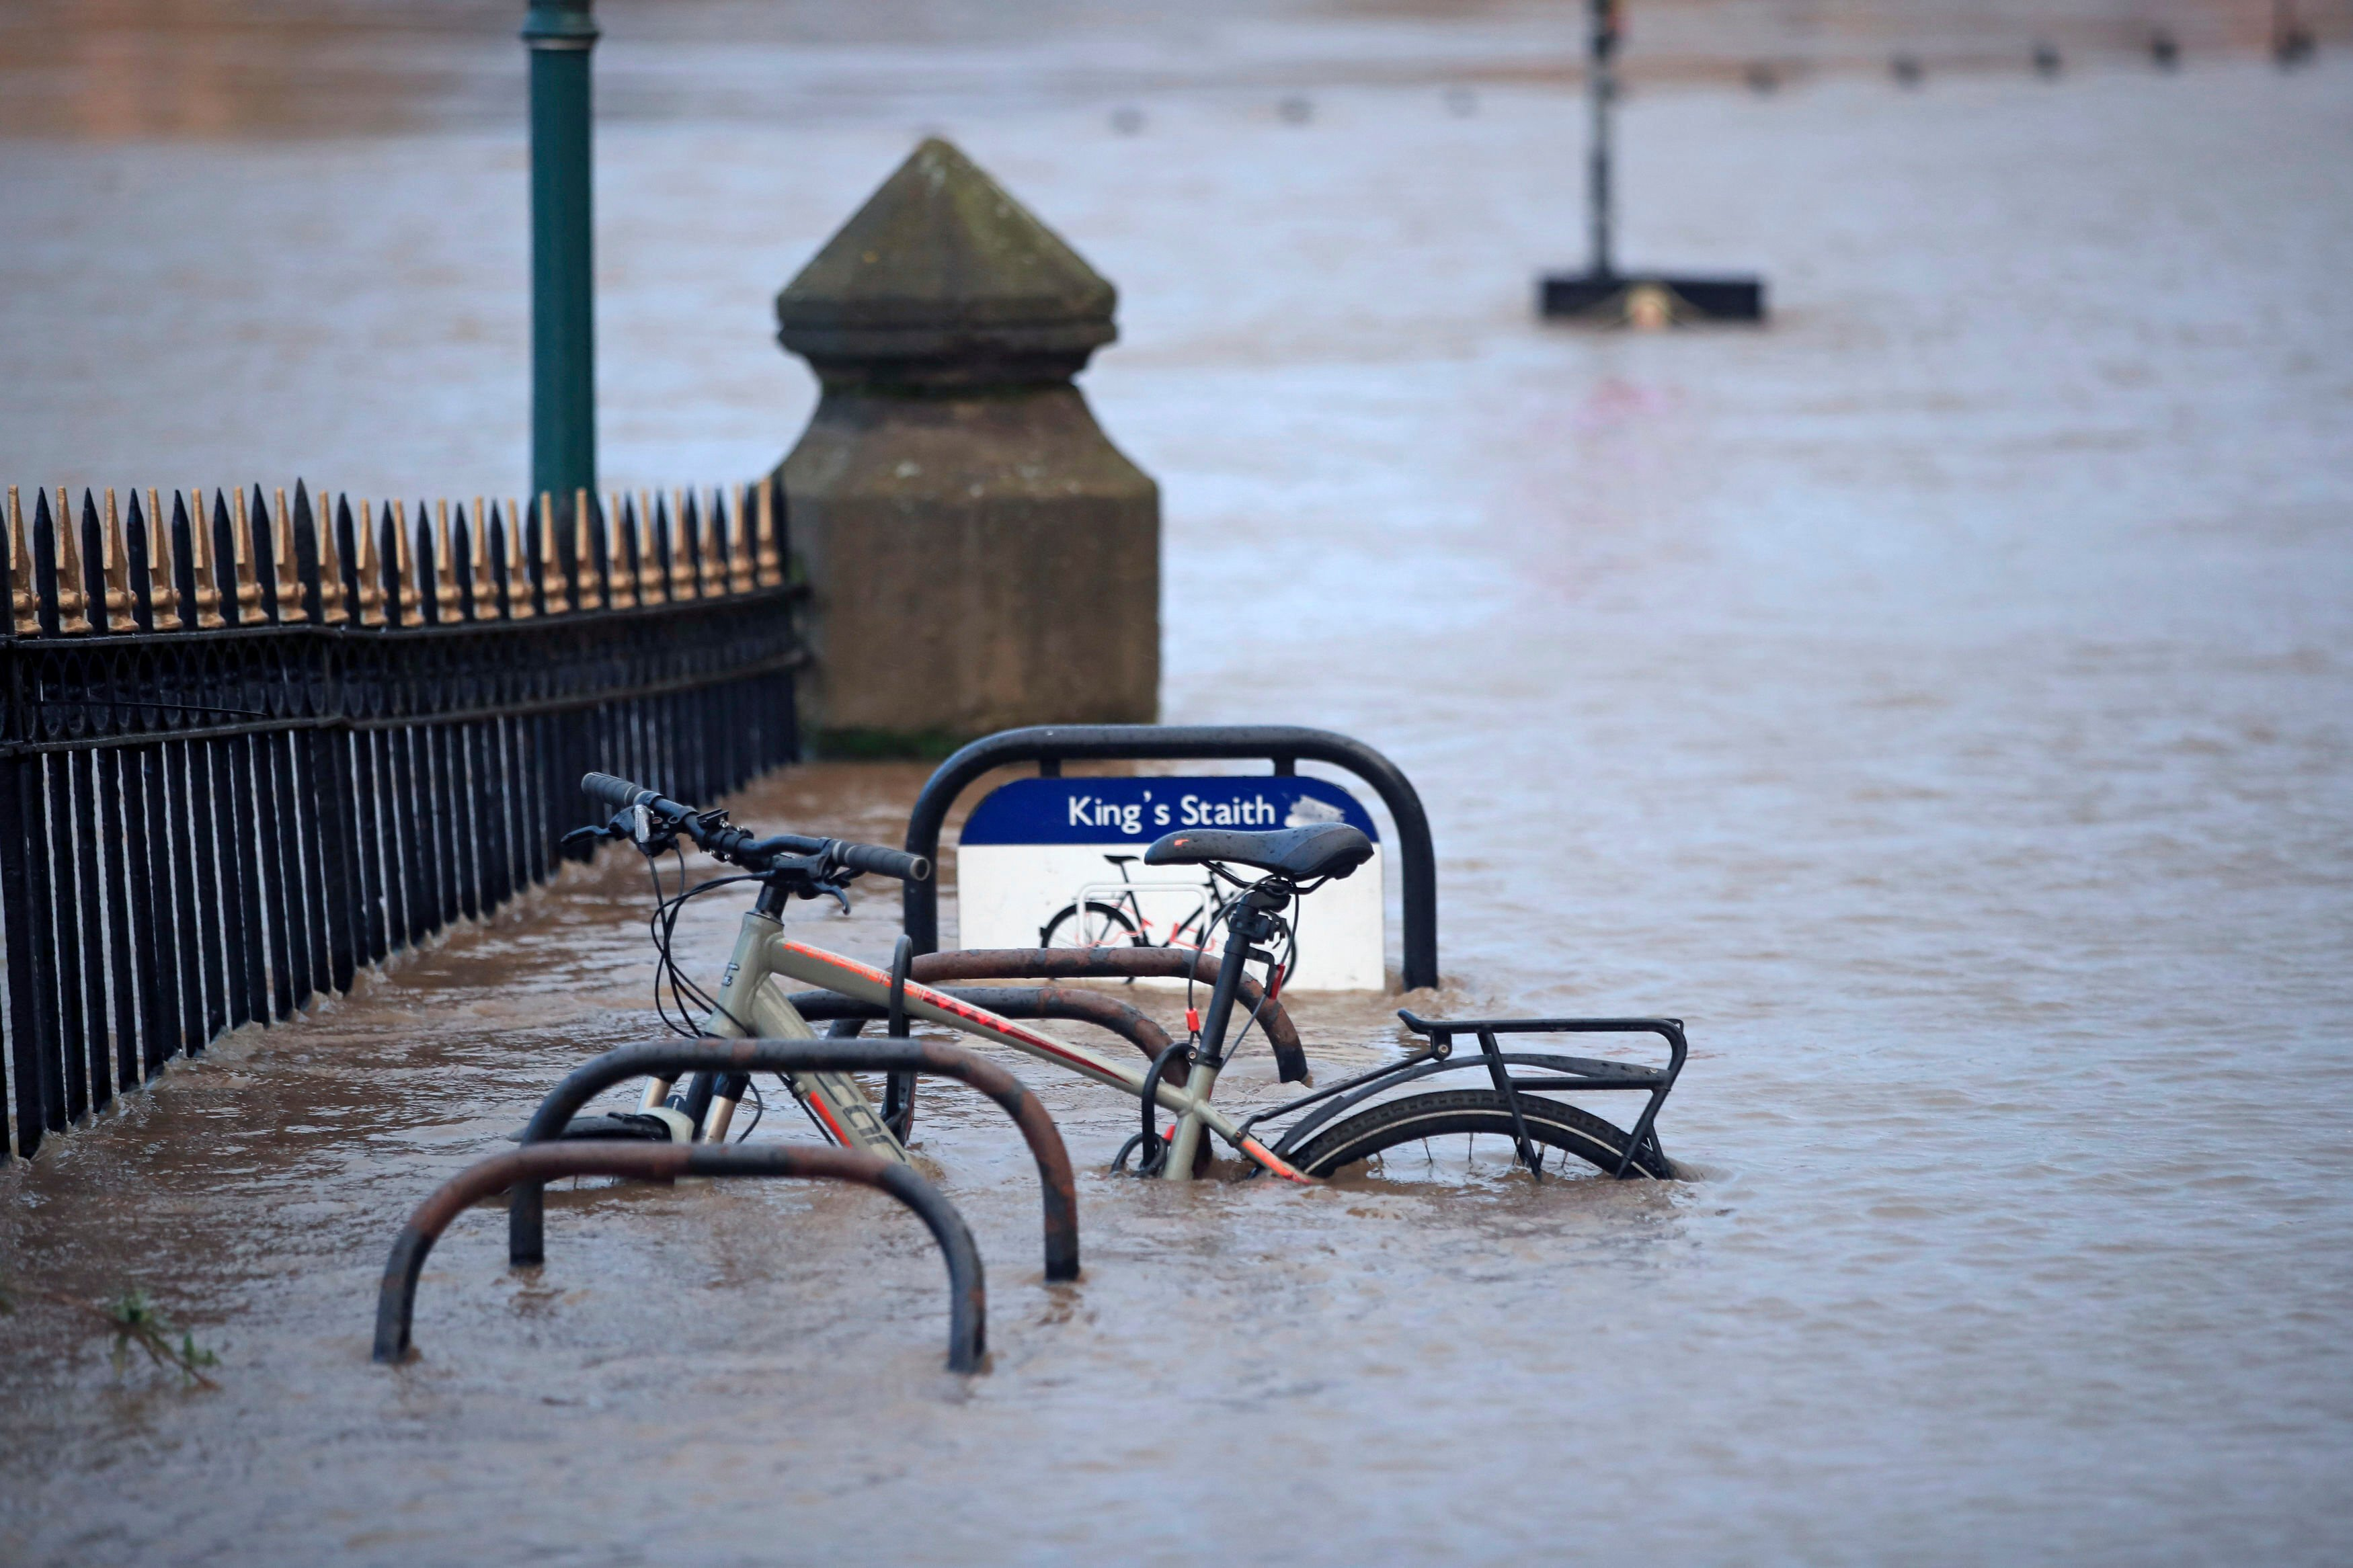 A cycle rack engulfed by floodwater after the River Ouse burst its banks in the aftermath of Storm Ciara, in York, England, Monday, Feb. 10, 2020. (AP Photo)